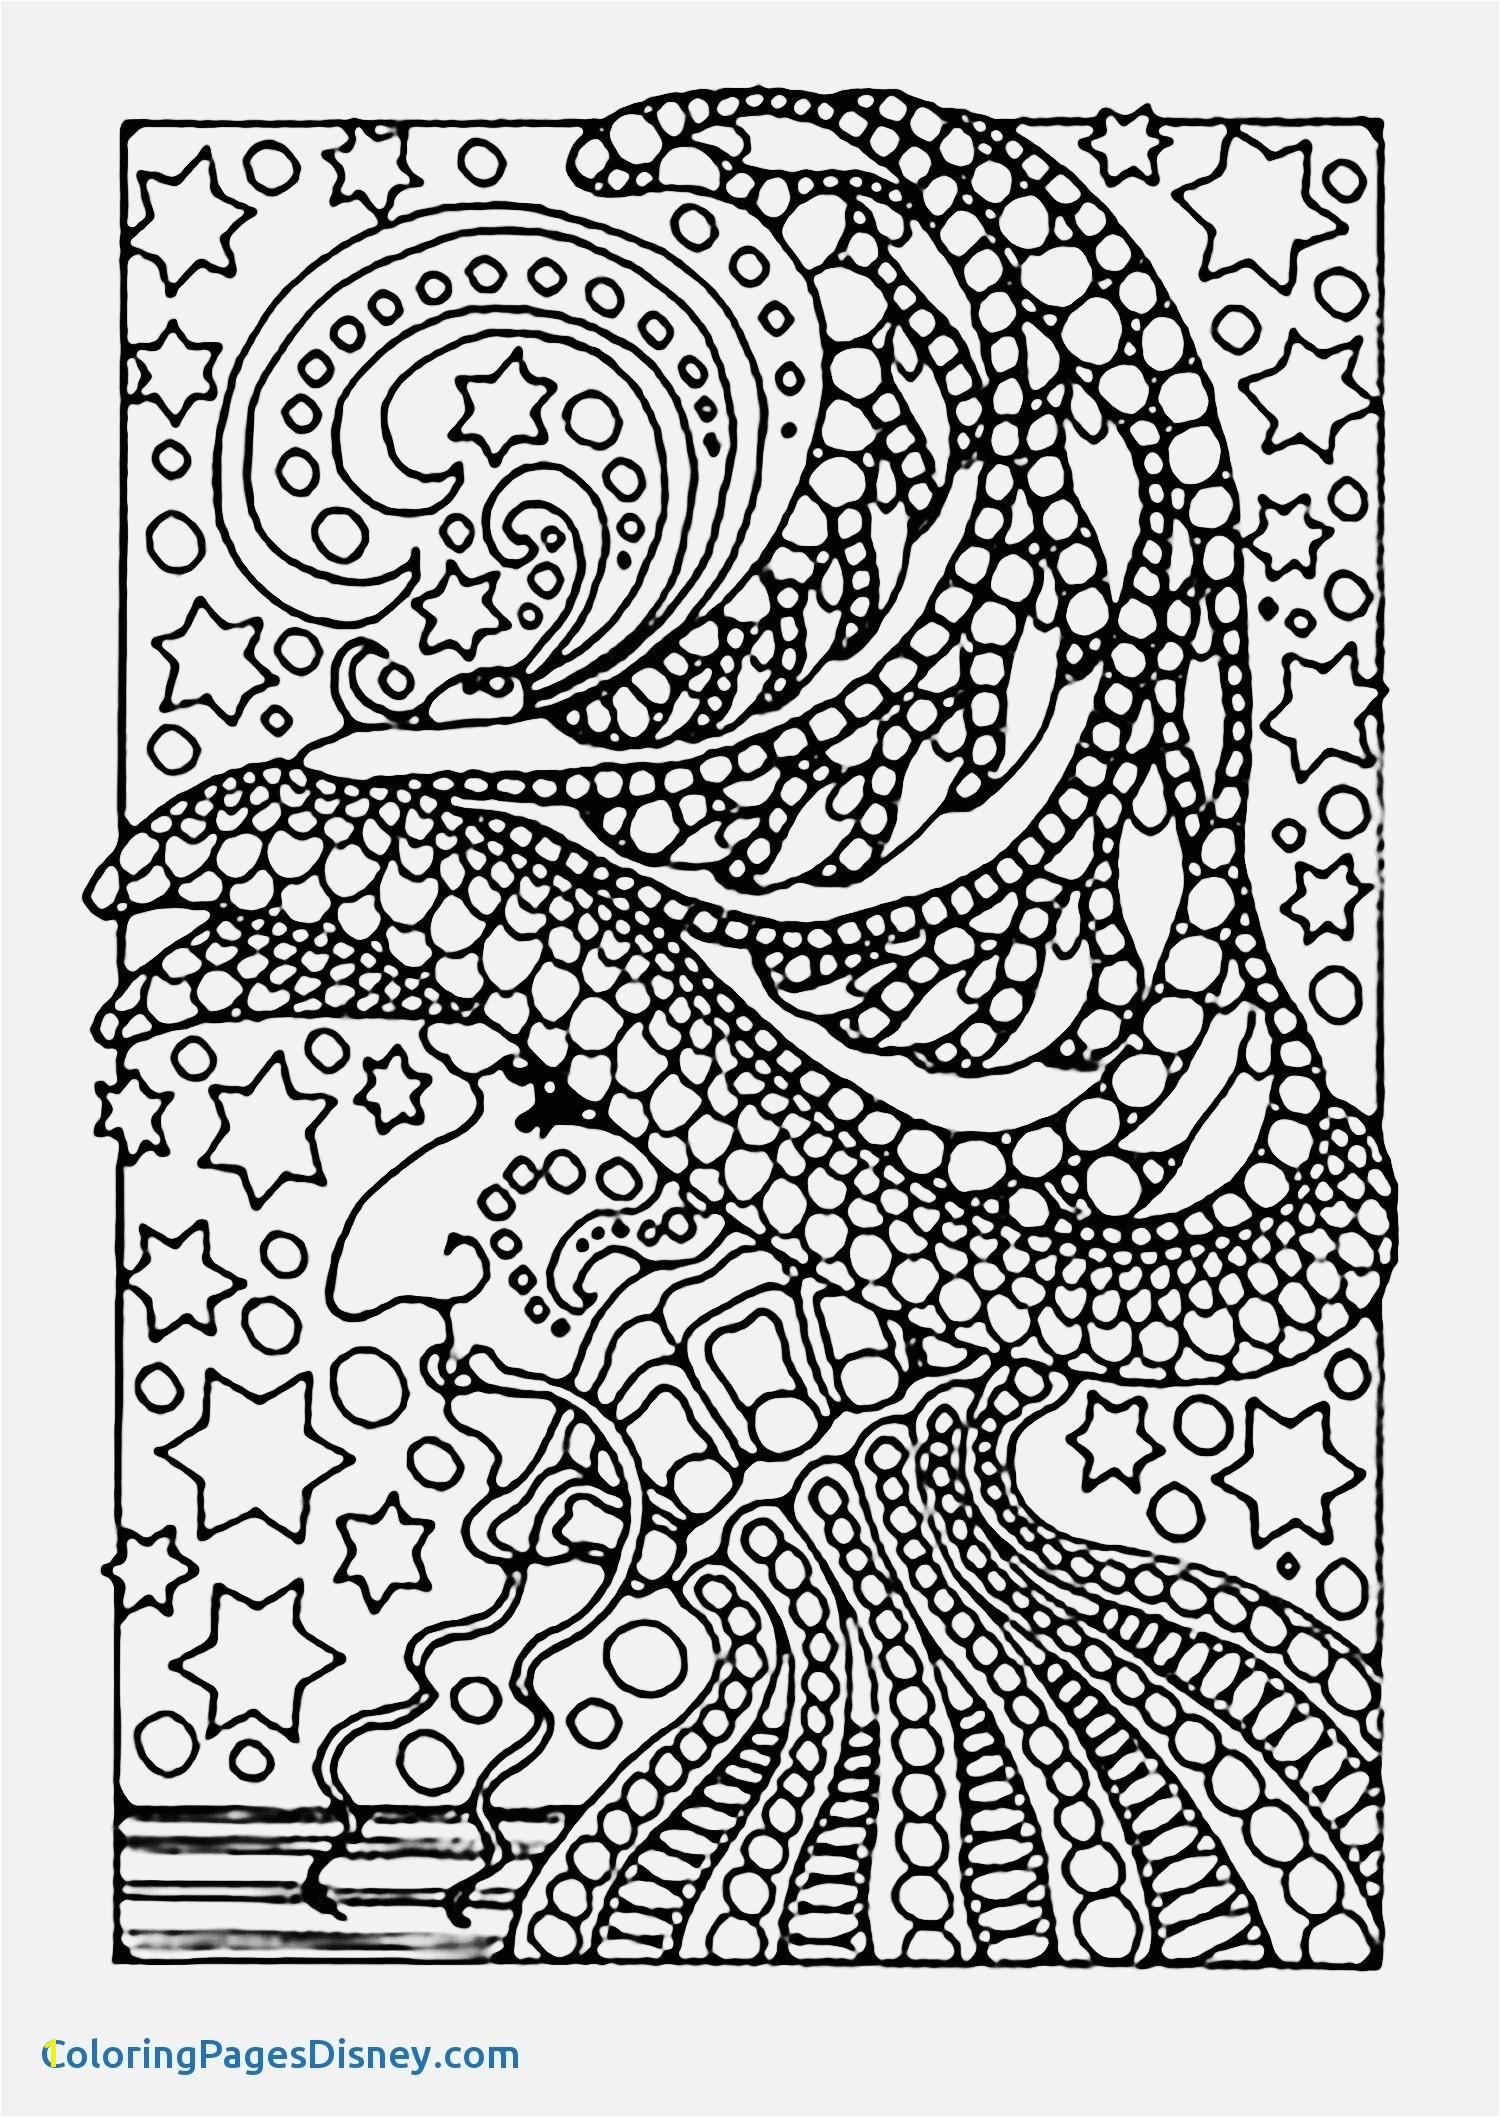 Coloring Pages Coloring Book Coloring Pages Coloring Book Beautiful Colouring In Books For Adults Coloring Pages Coloring Book Heavy Metal